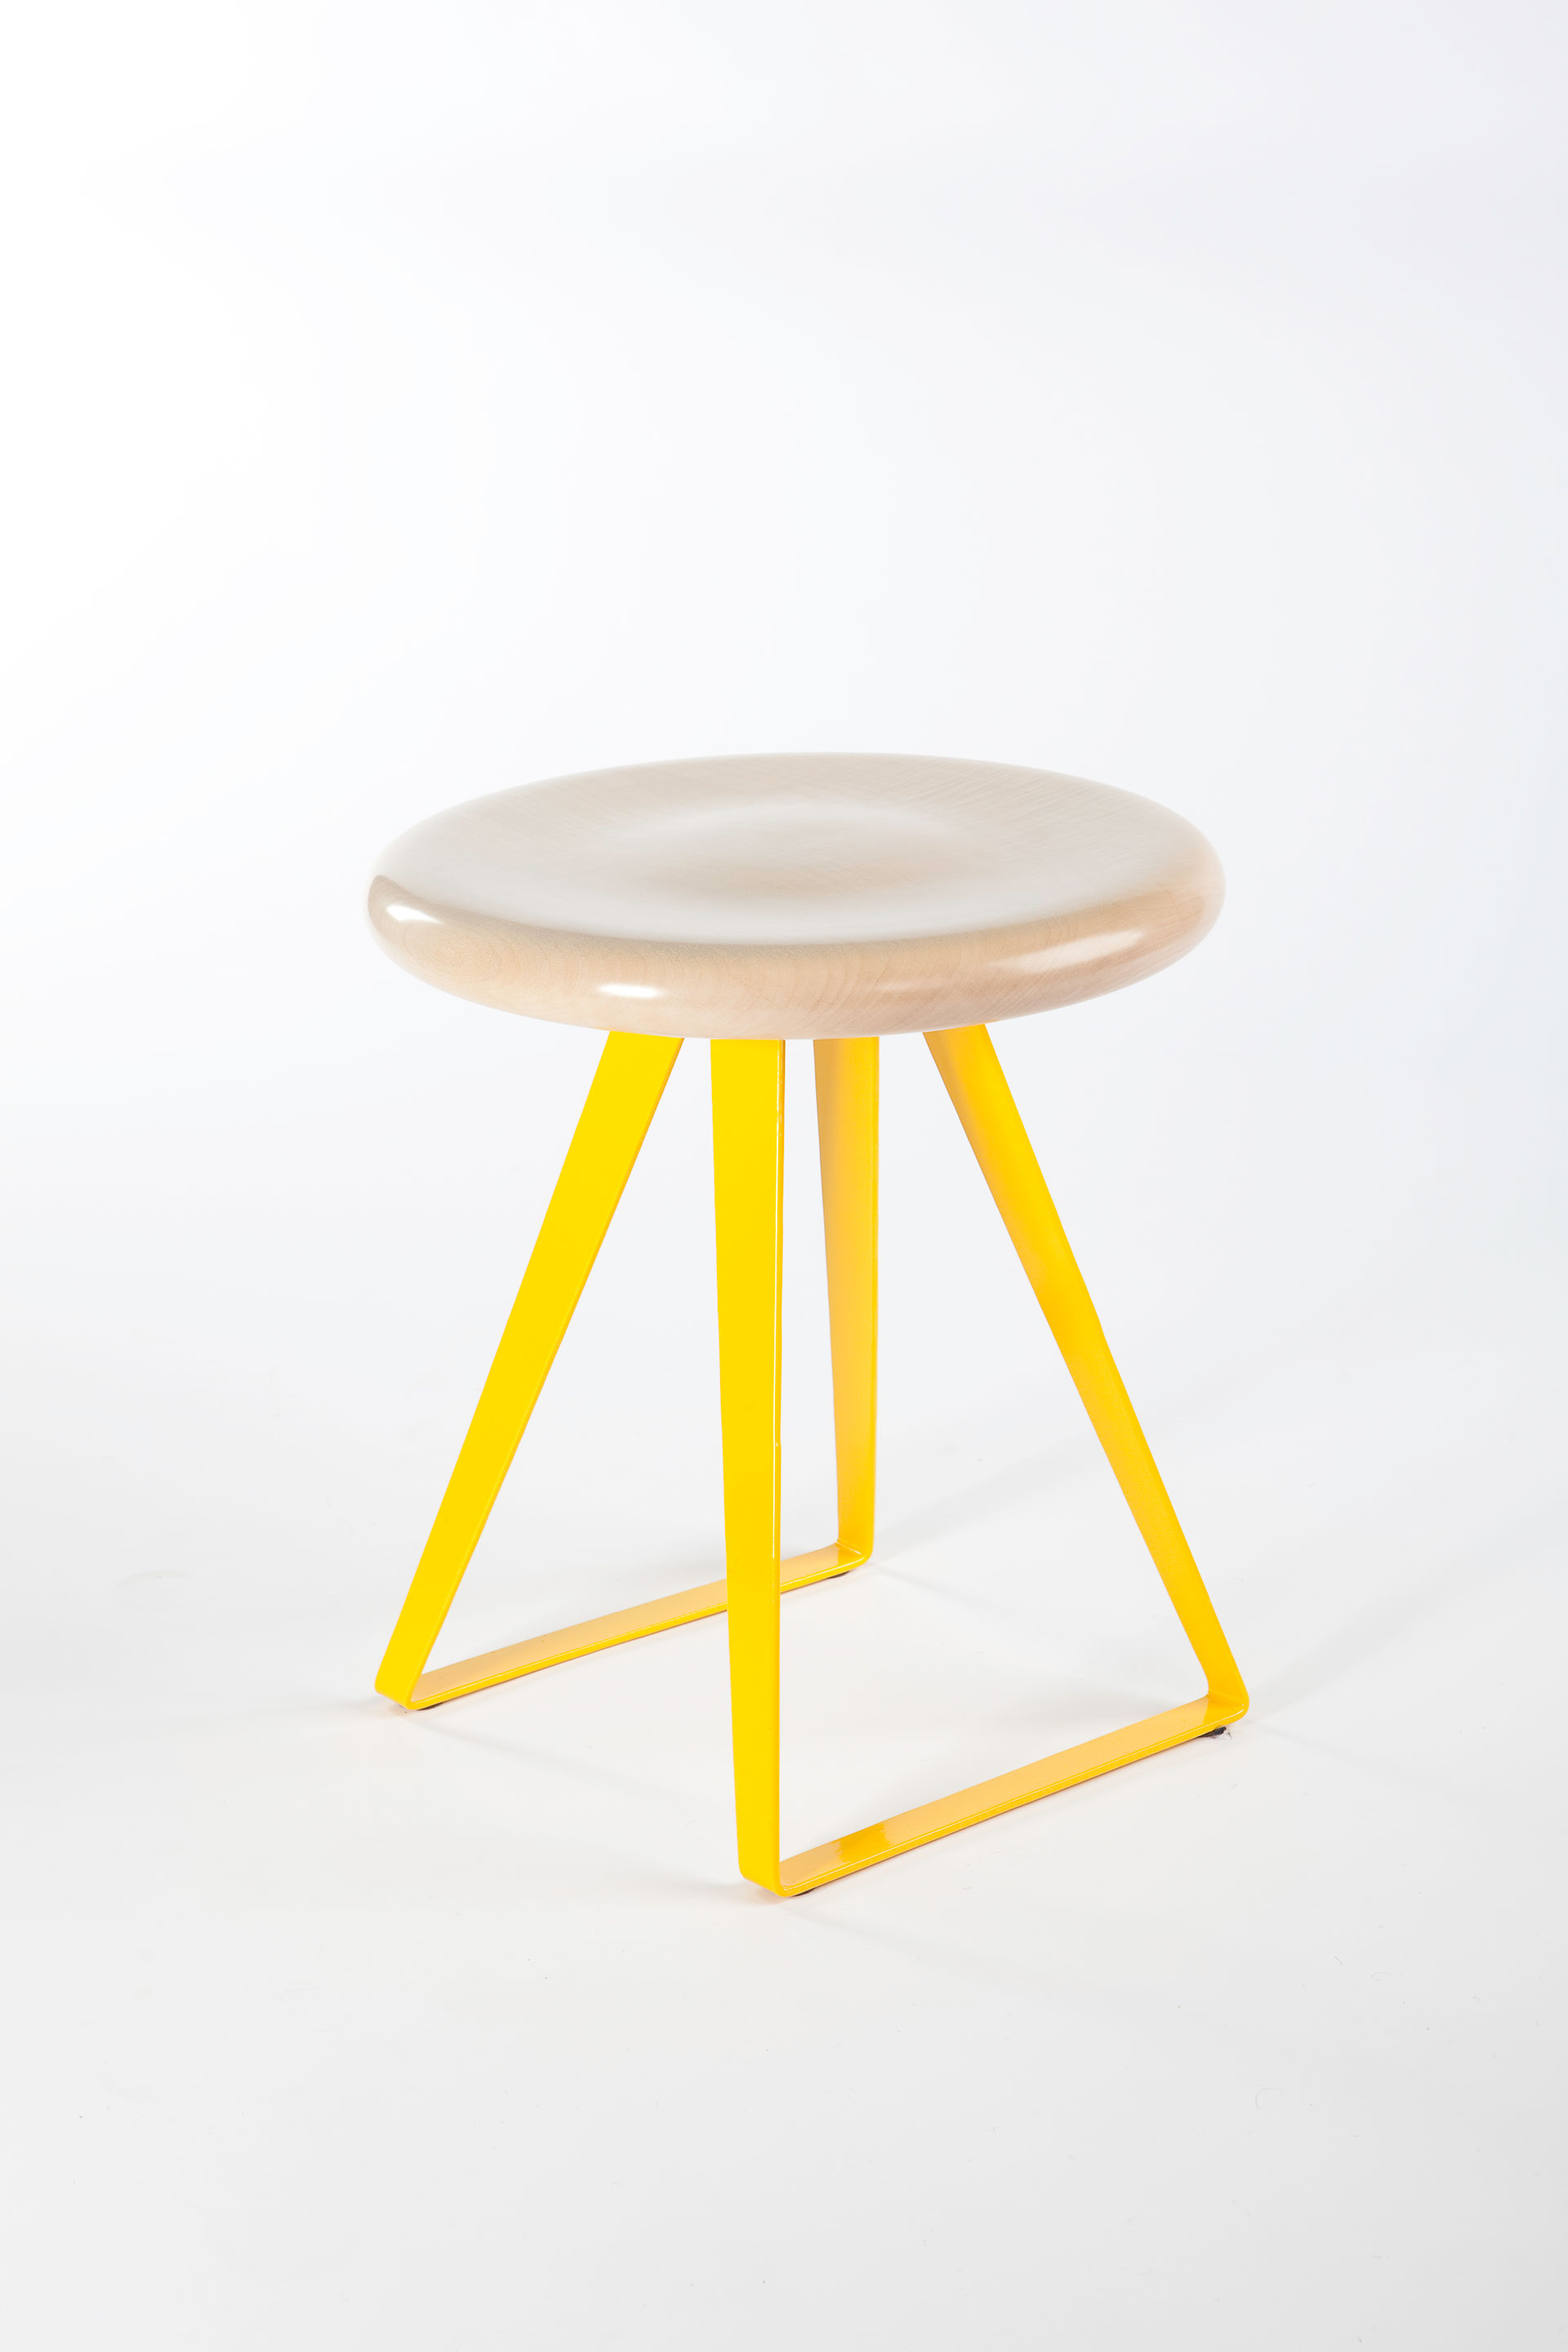 Yellow steel leg stool